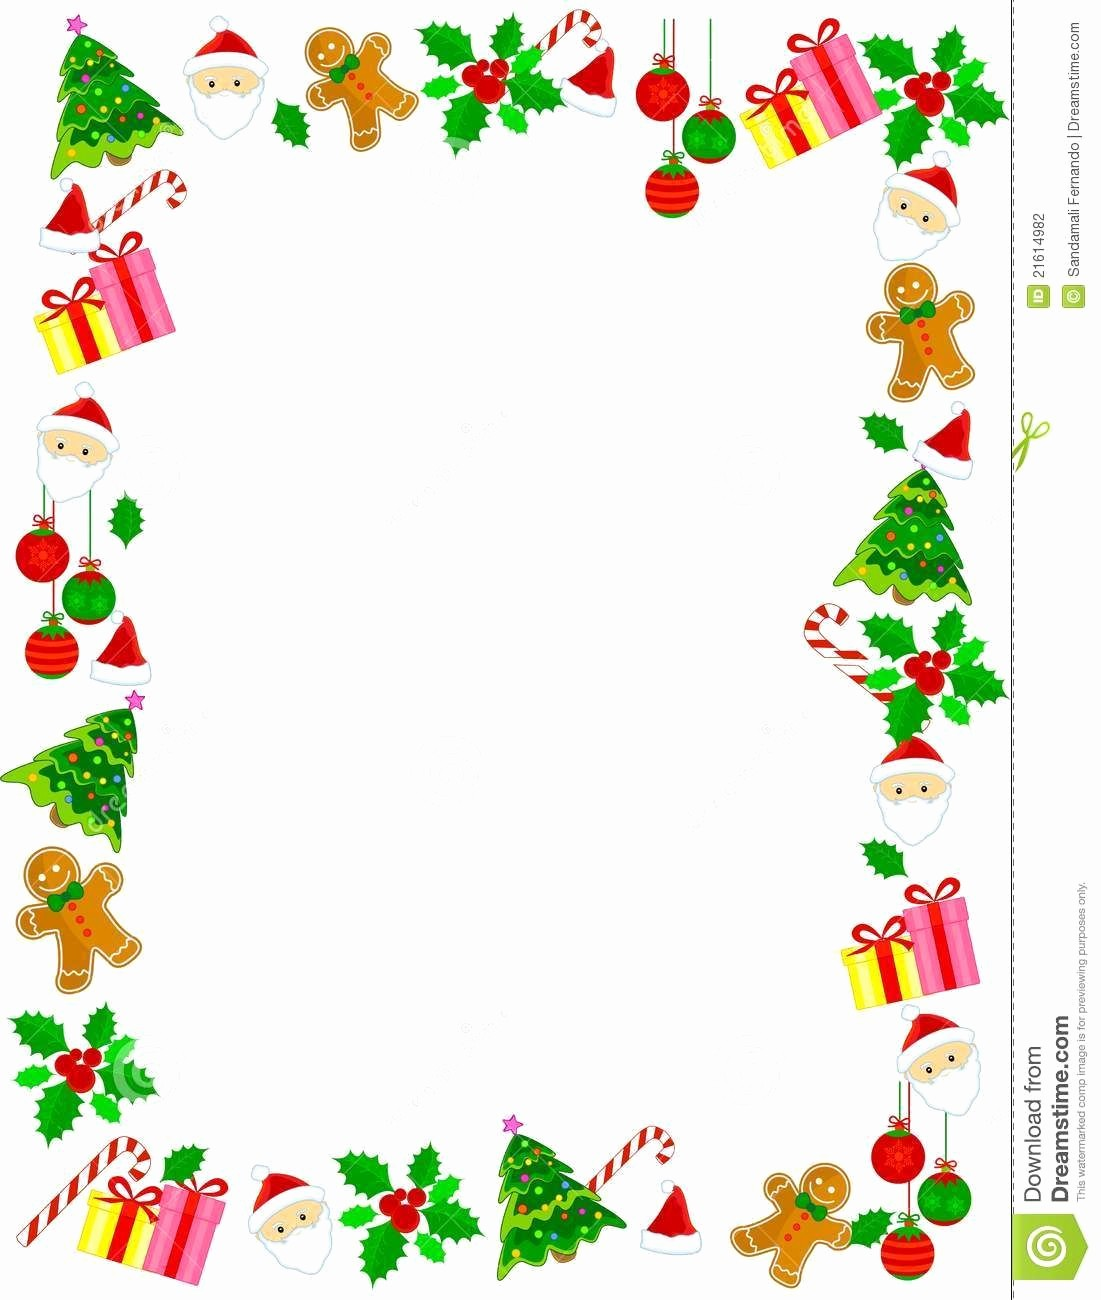 Festive Borders for Word Document Best Of Christmas Border Frame Download From Over 50 Million